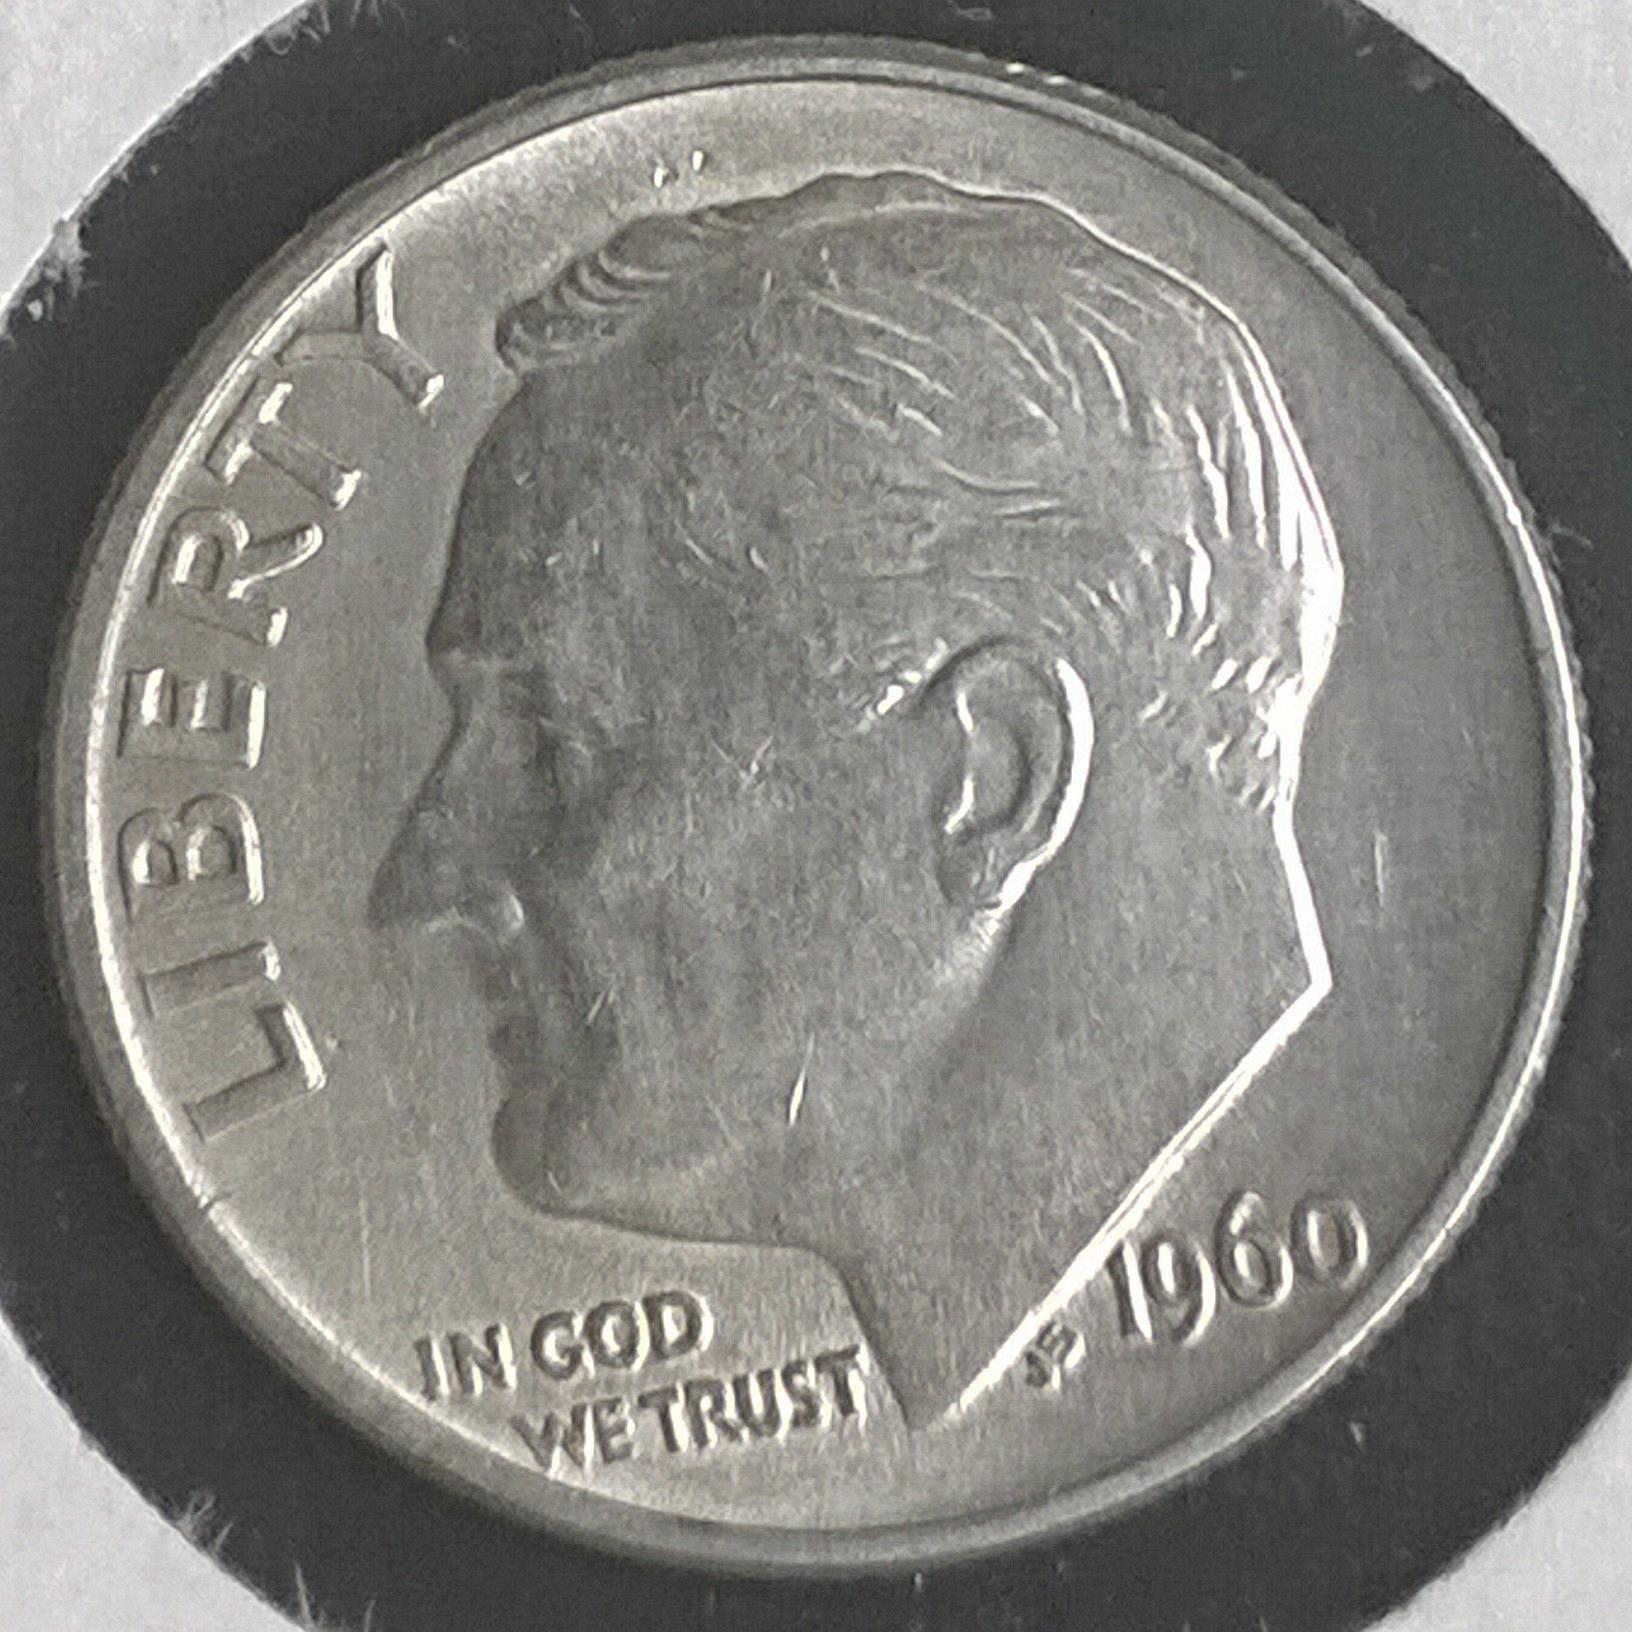 90/% silver from OBW Bank BU Roll 1960-P Roosevelt Dime